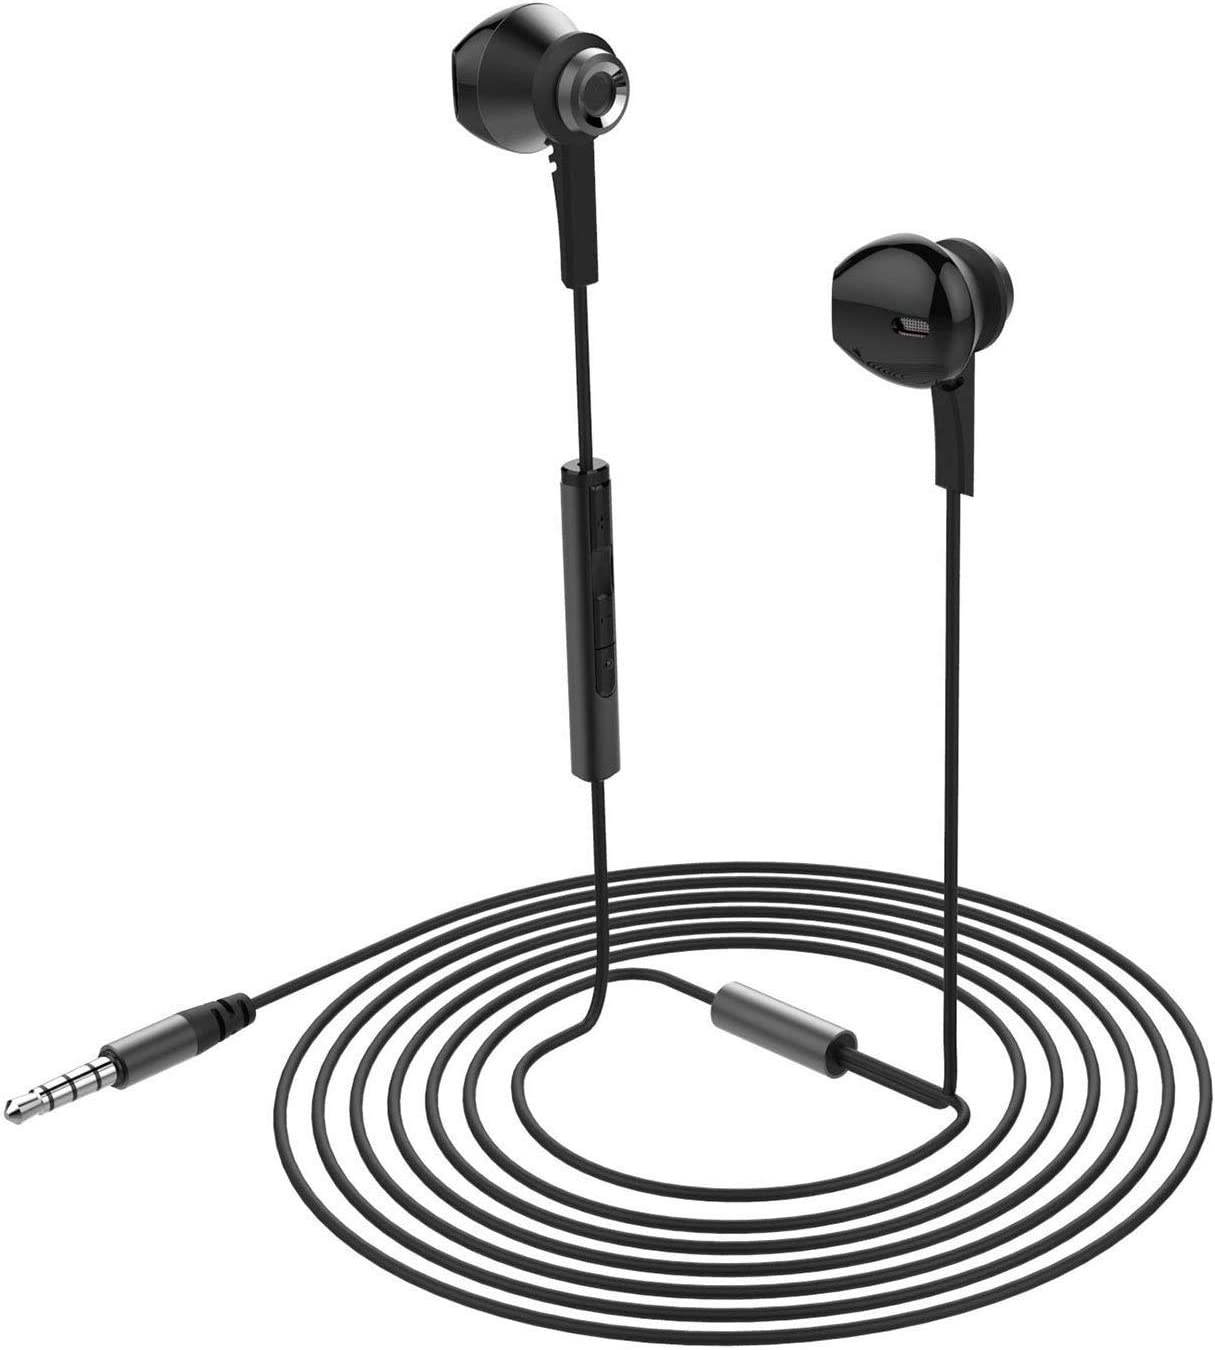 HOTWAV Headphones Earphones Earbuds Wired Earphones with Microphone Noise Cancelling in Ear Headphones Moving Coil Heavy Bass Earphones with Mic Volume Control for Smartphone,Tablet and More